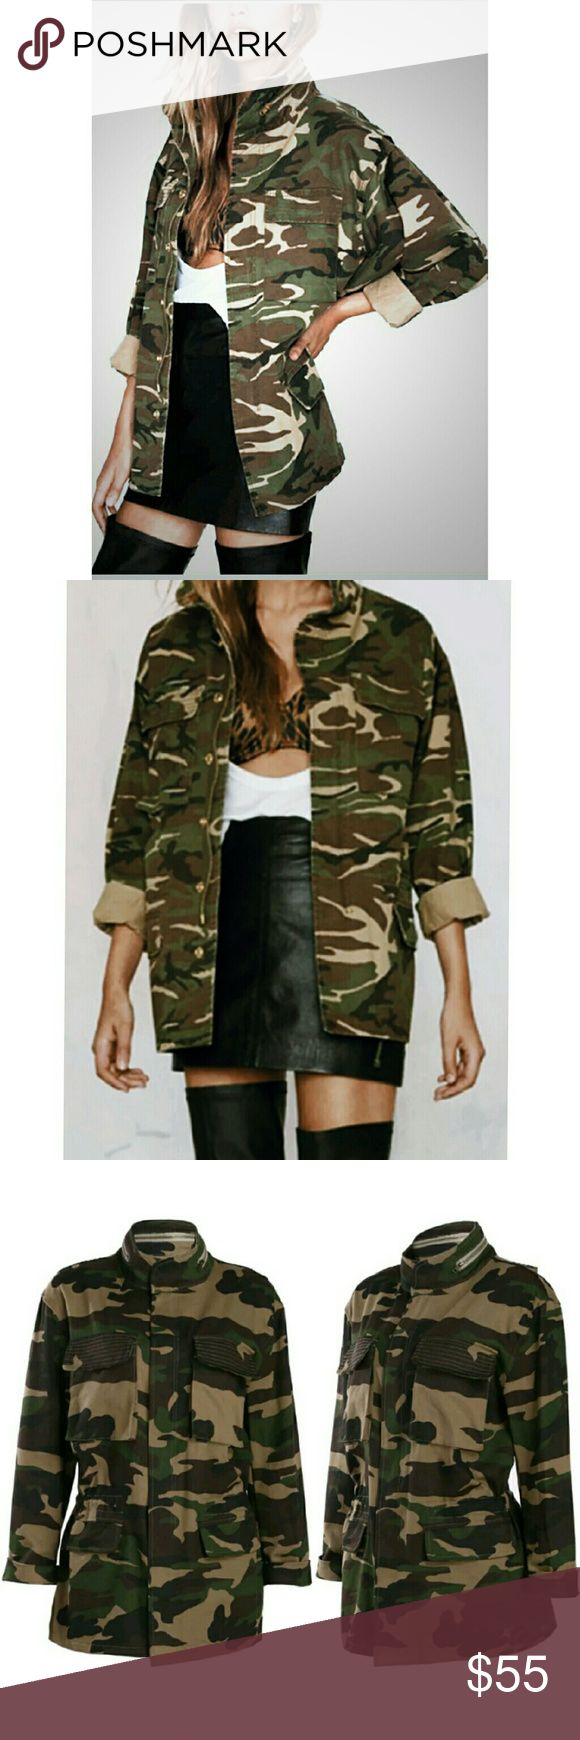 NEW! Camo Chic Bomber. Jacket Size S LAST ONE  Super trendy statement piece!   Camouflage  Army Green Military Style High Quality Fabric  Polyester Blend  Wash low temperature Do not Bleach NWOT Directly From Vendor   No Trades  Fast Shipping Moda Ragazza  Jackets & Coats Utility Jackets